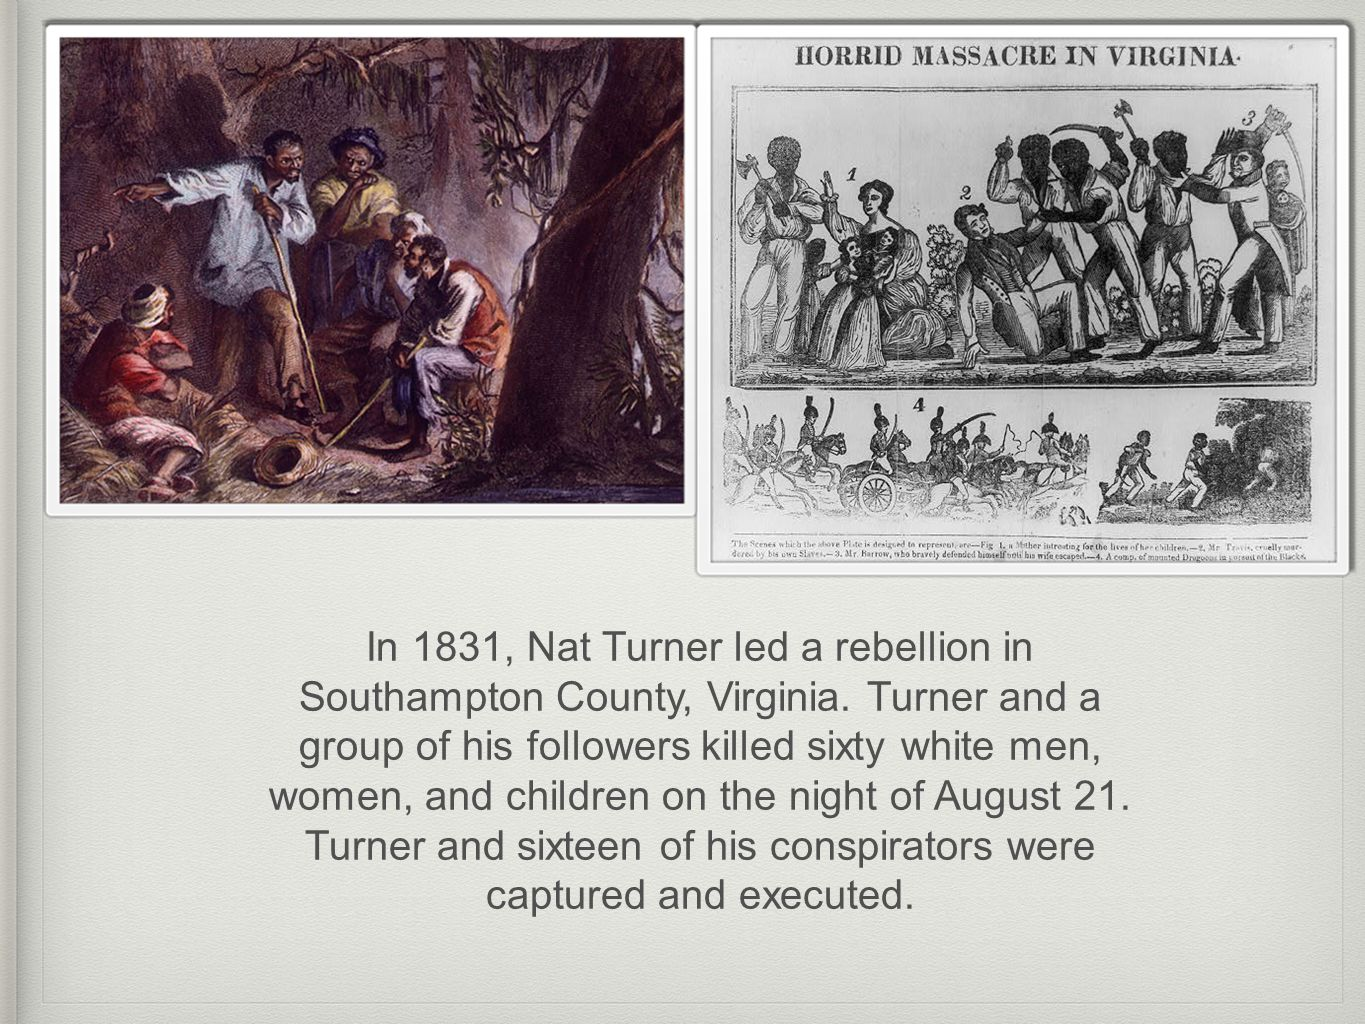 In 1831, Nat Turner led a rebellion in Southampton County, Virginia.